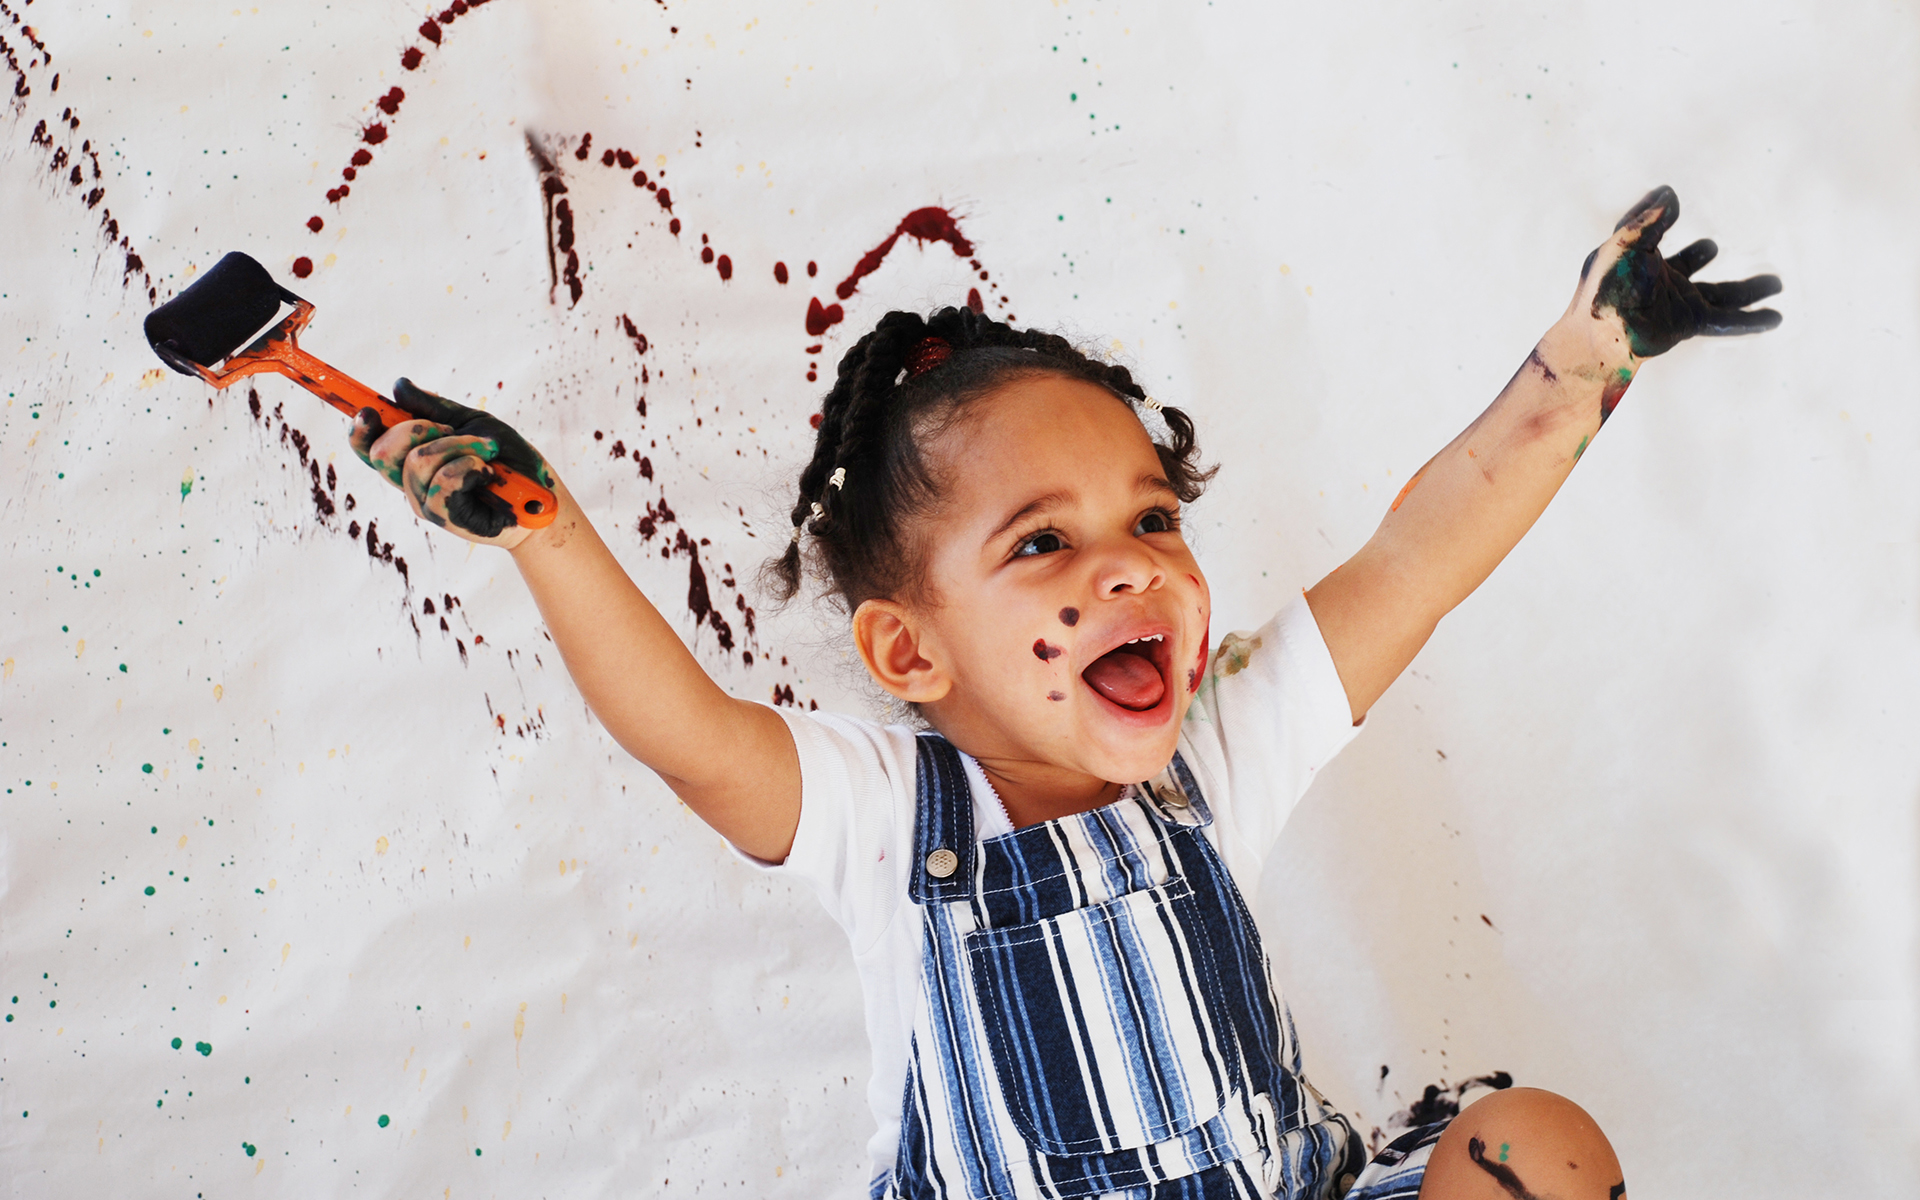 Helping children embrace big emotions - Happy little girl painting